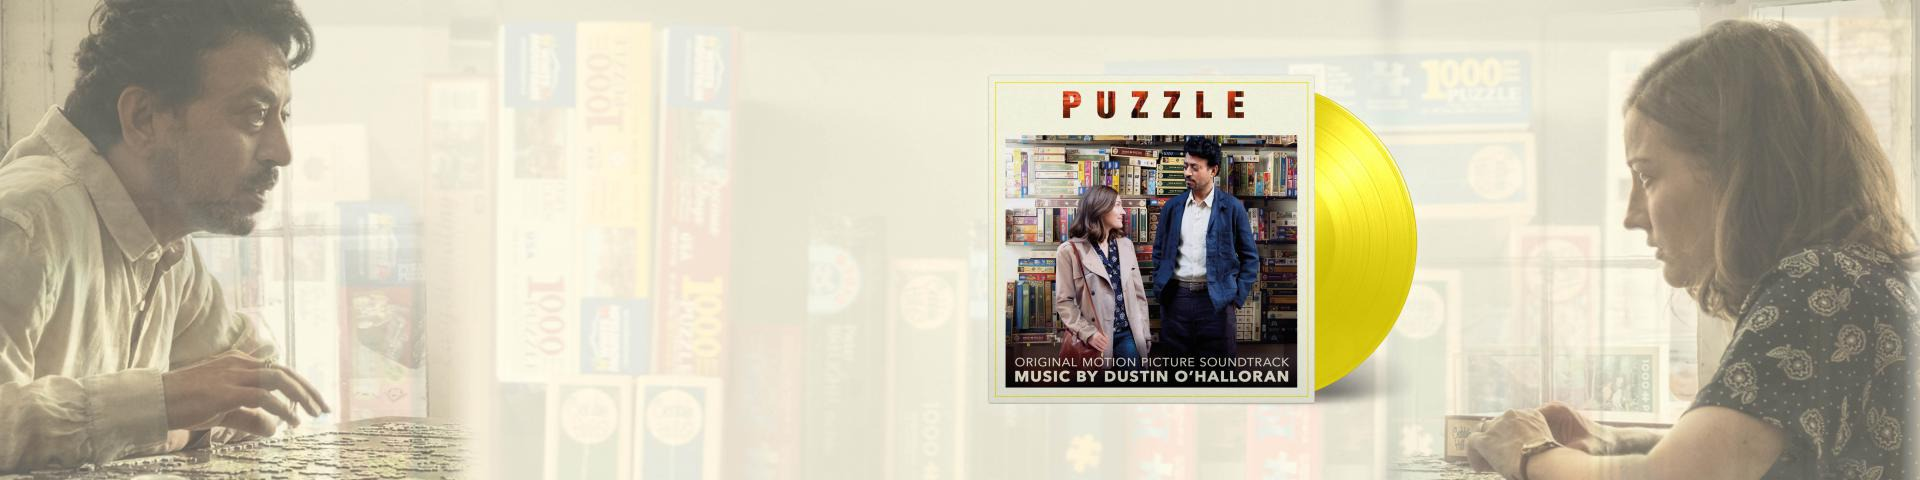 ORIGINAL SOUNDTRACK - PUZZLE